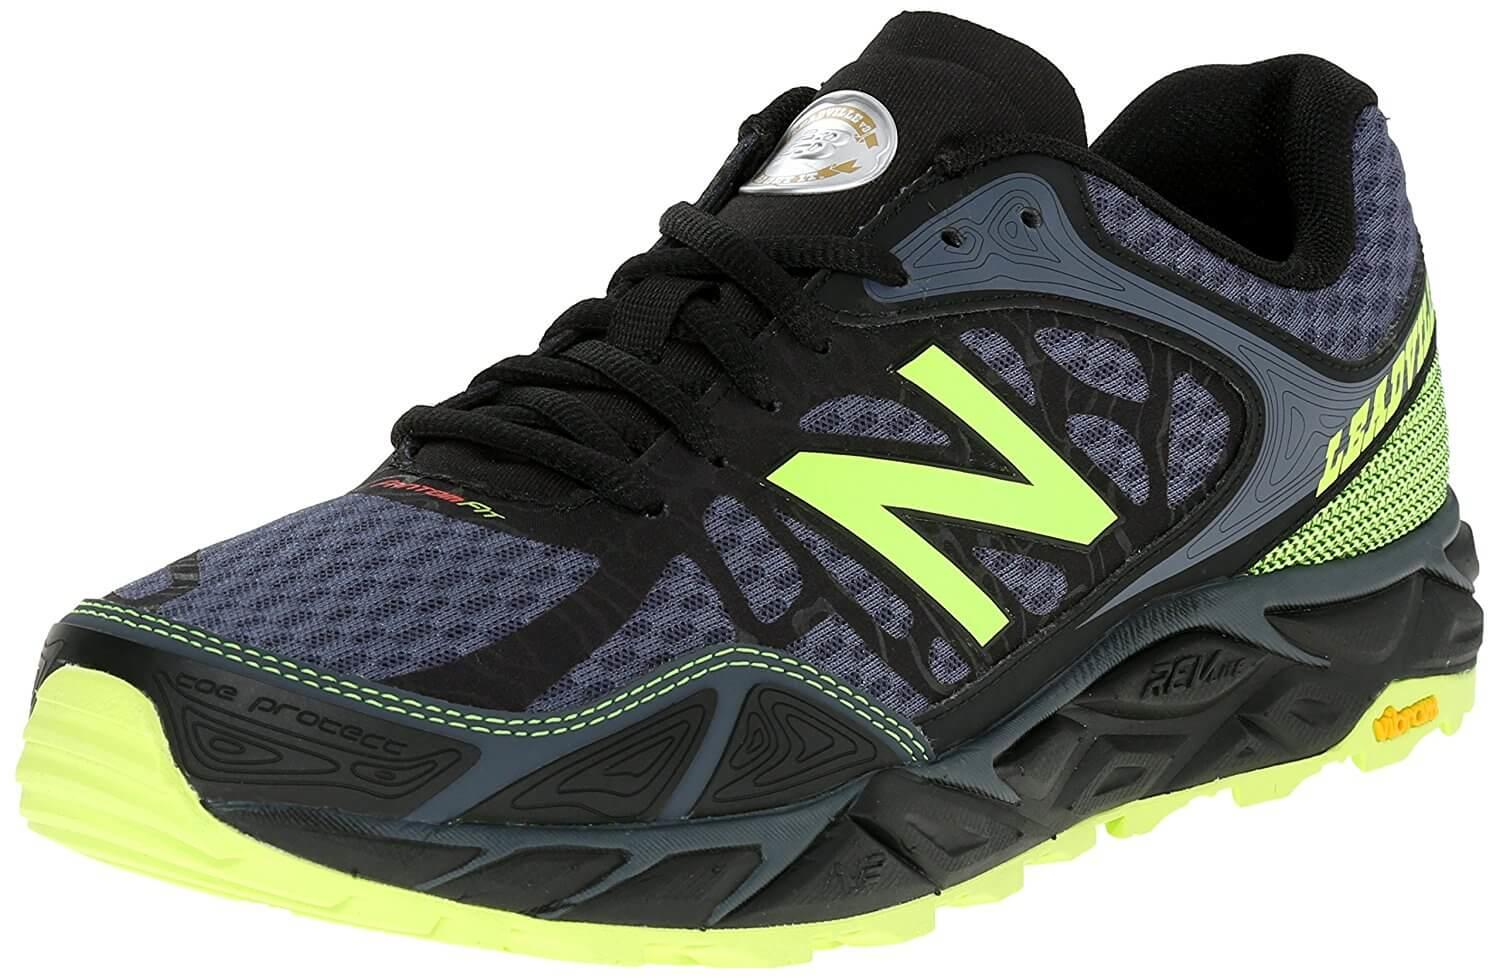 The New Balance Leadville v3 is named after a brutal trail running event.